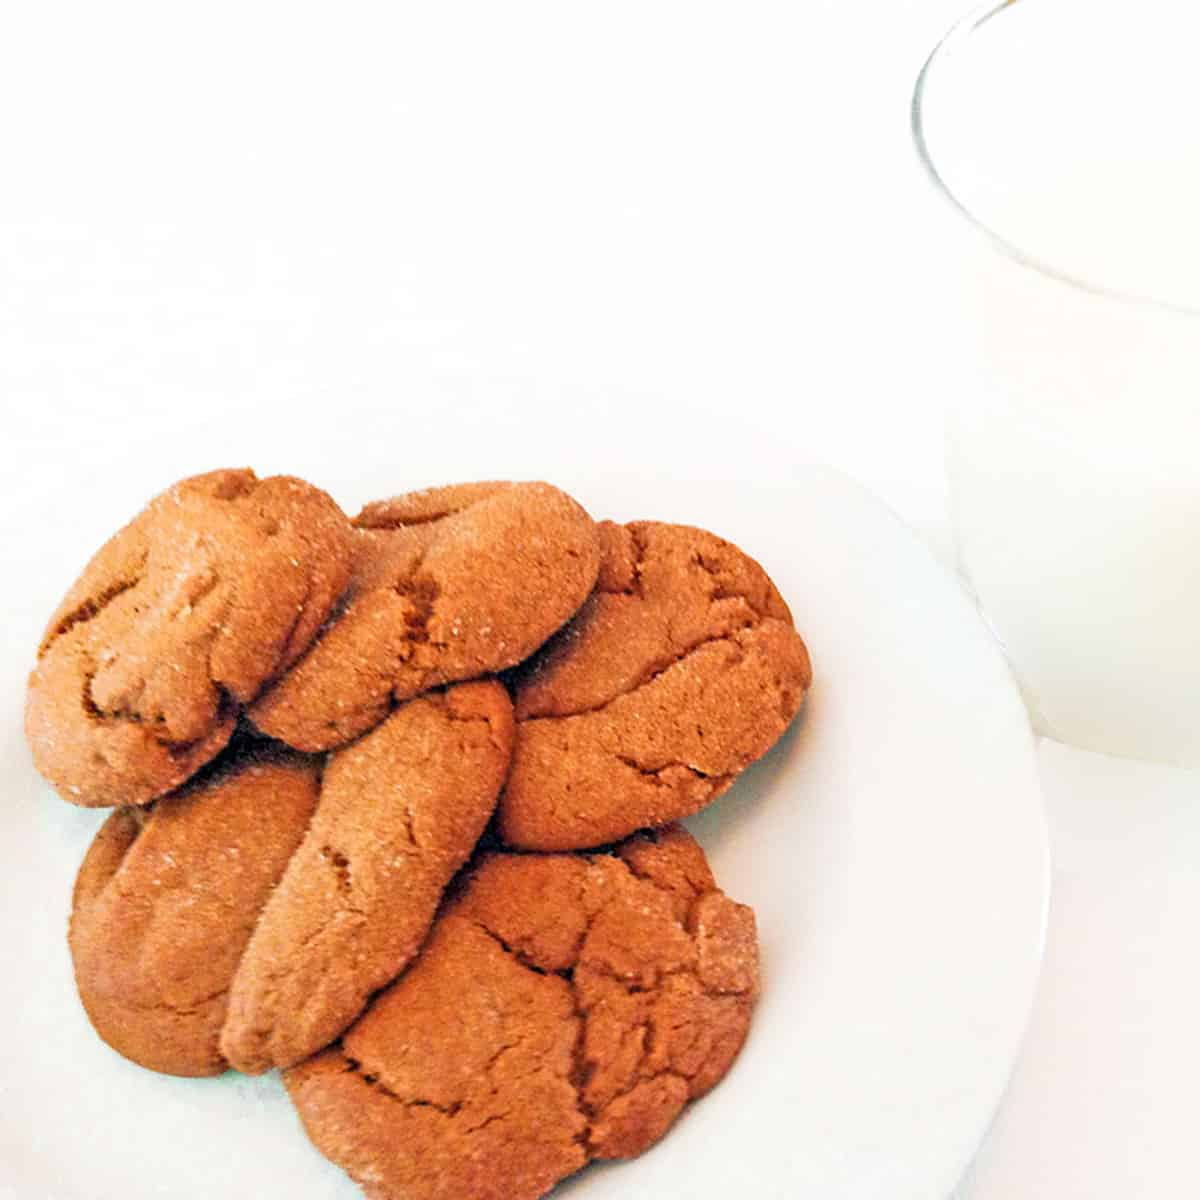 A plate of cookies and milk.